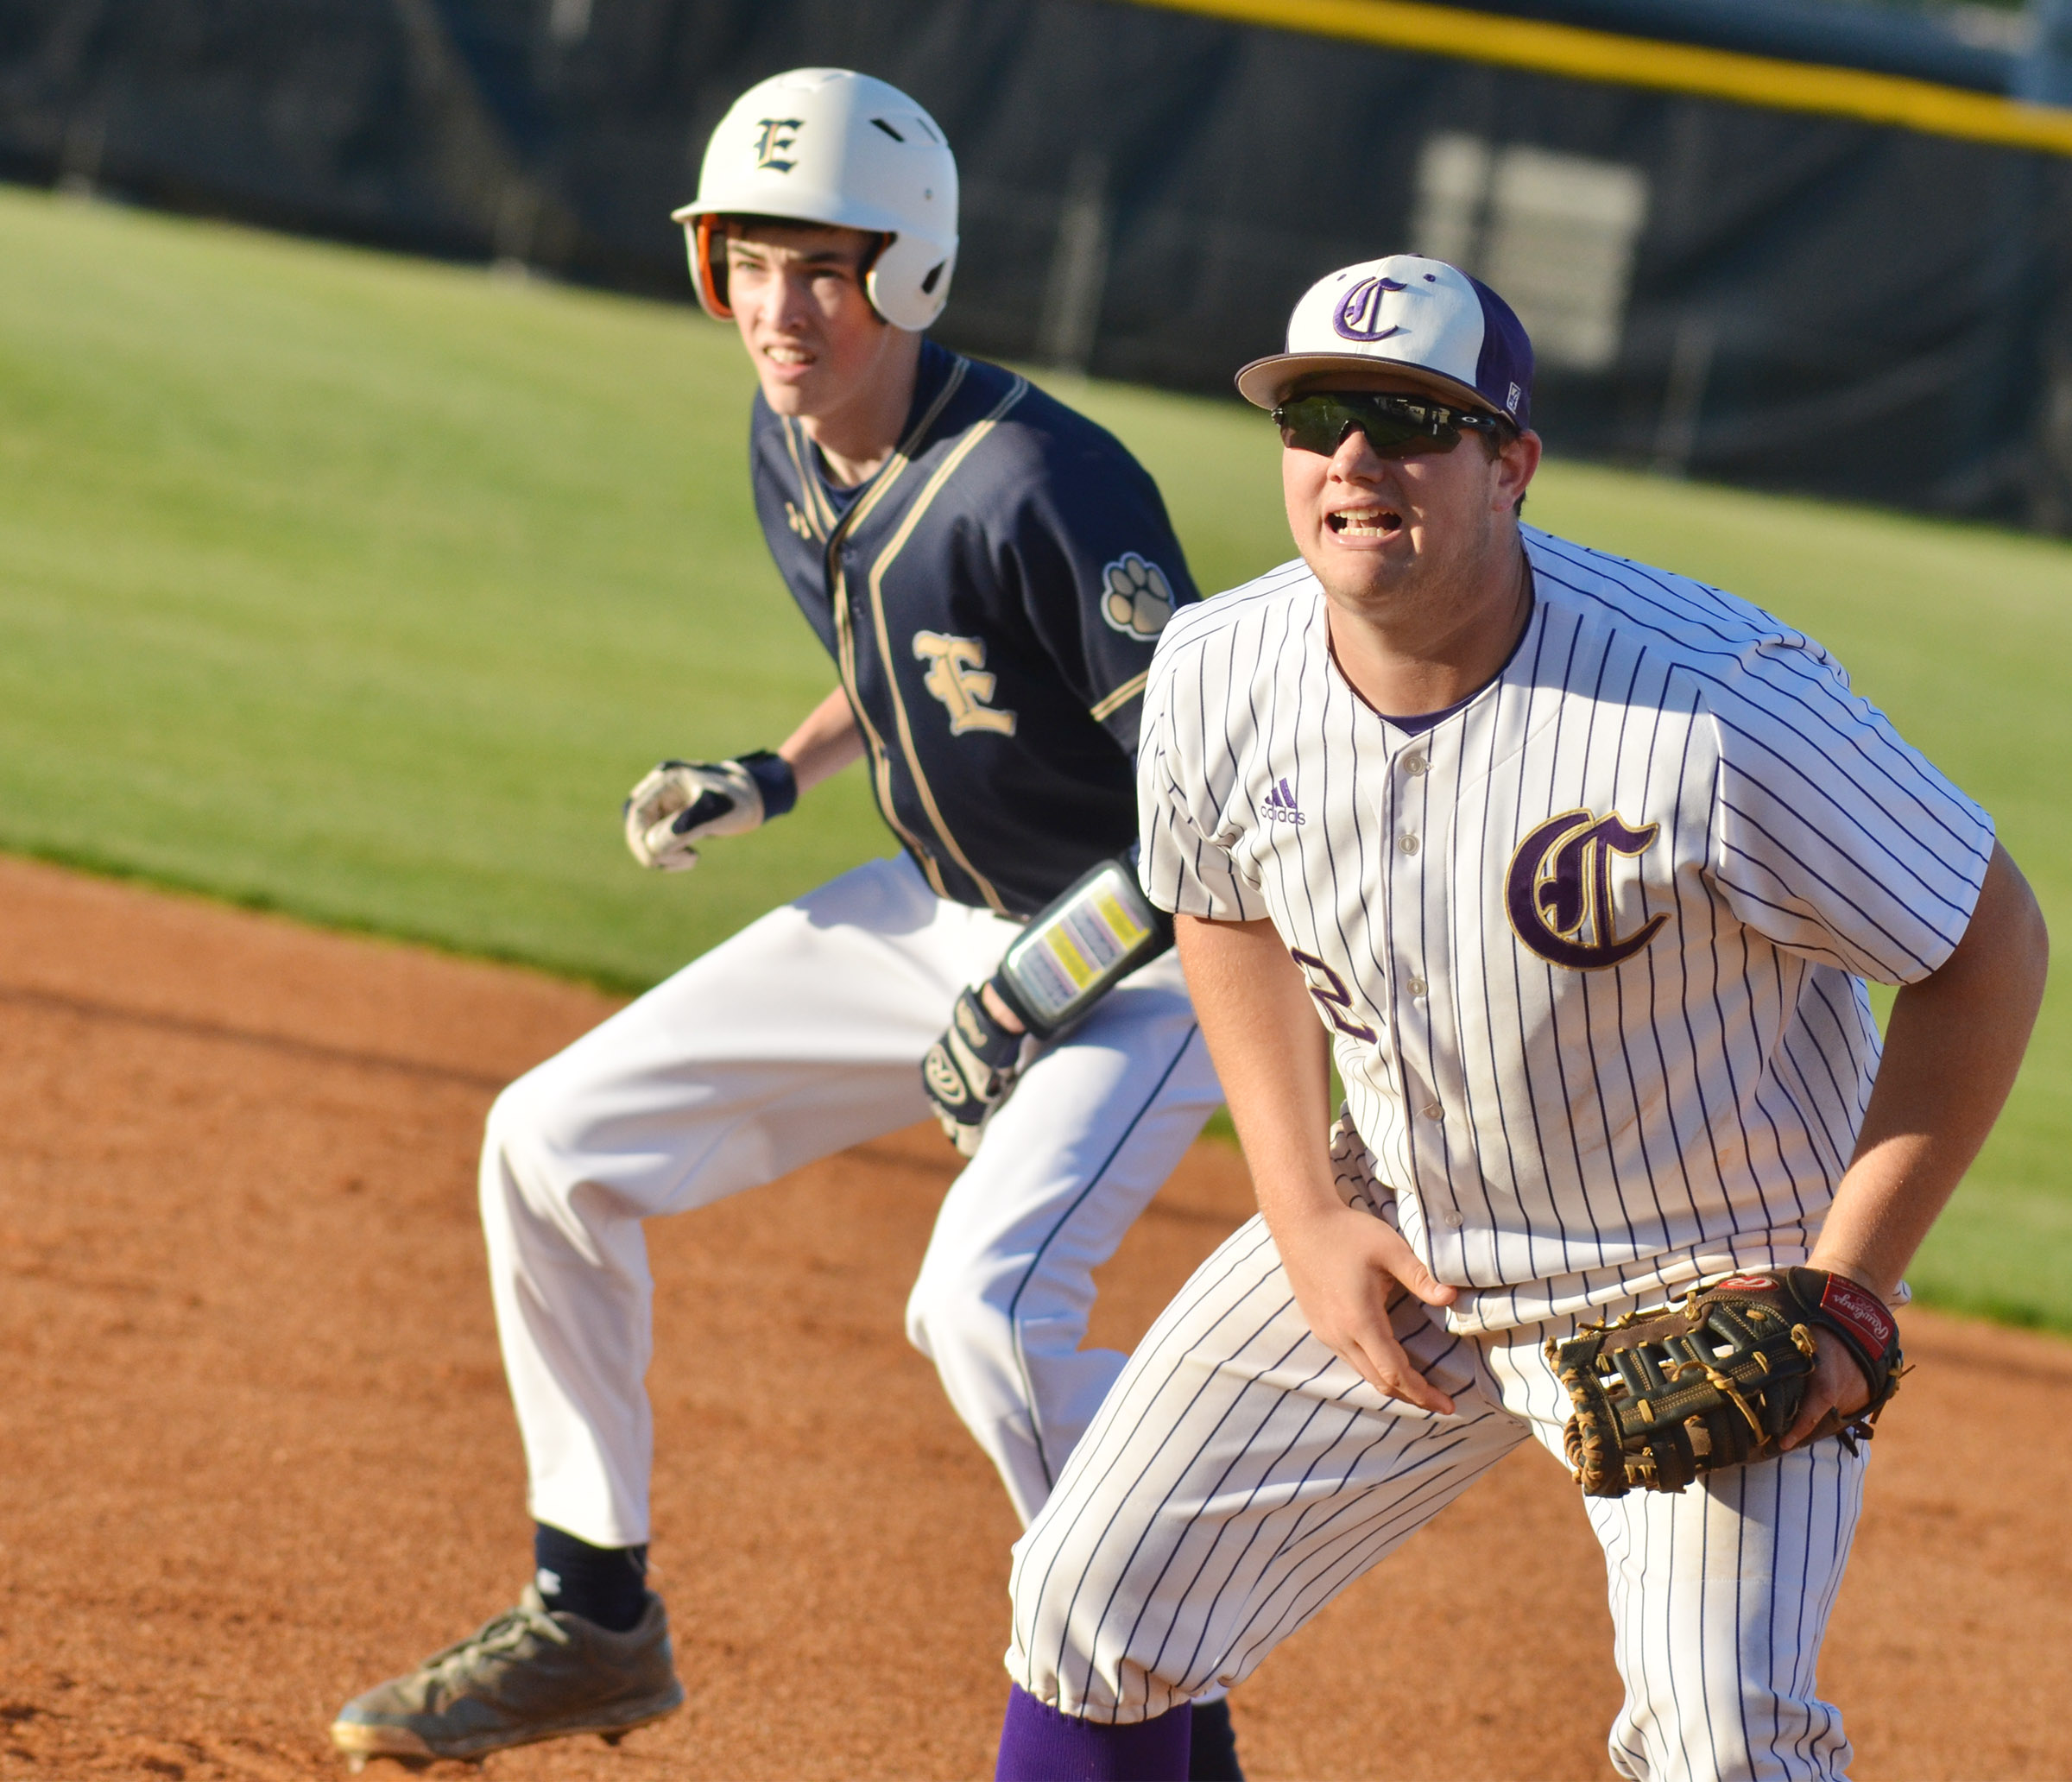 CHS sophomore Lane Bottoms watches the batter.